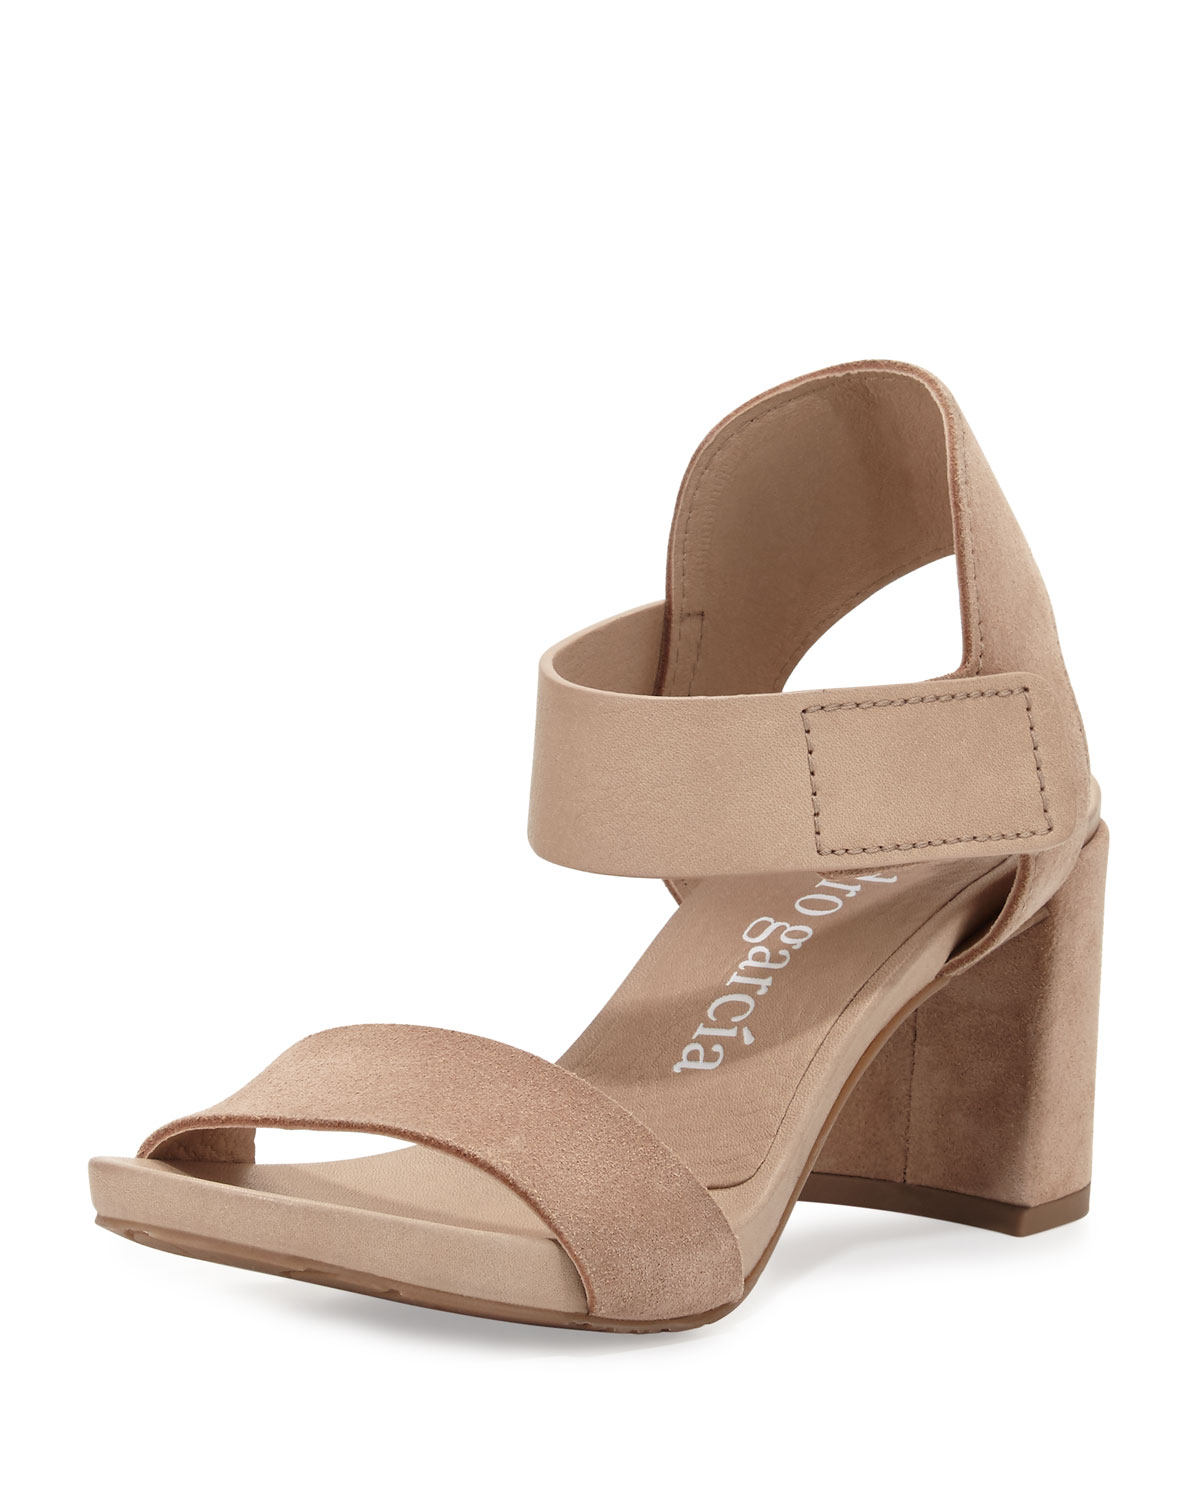 be3d6a1bdf49 Pedro Garcia Willa Suede   Leather City Sandal